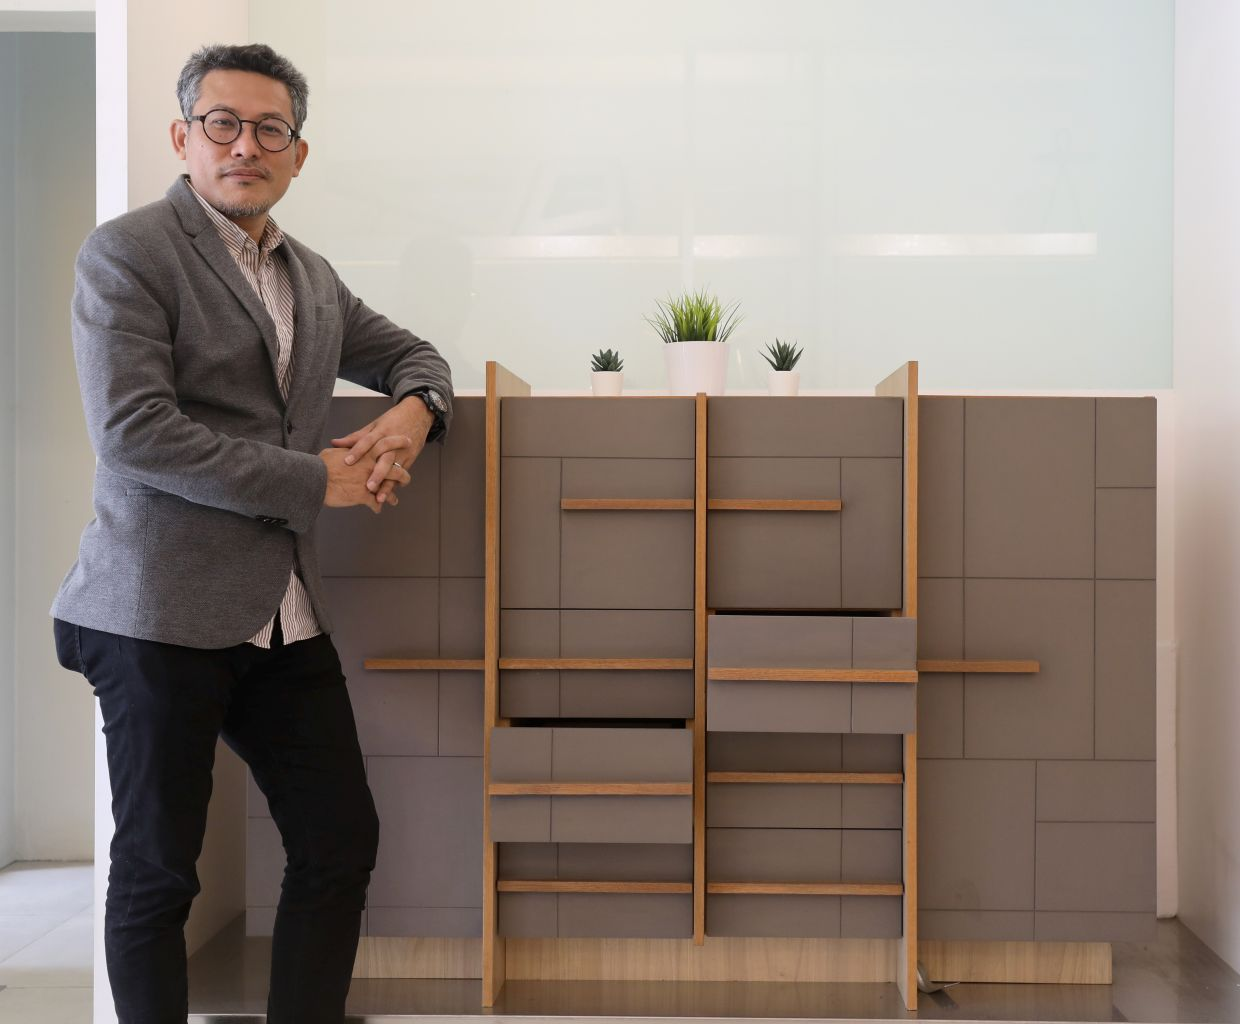 Mohd Noor: There is much potential for locally designed furniture, but efforts in raising awareness and the profile of Malaysian designers needs to be consistent.